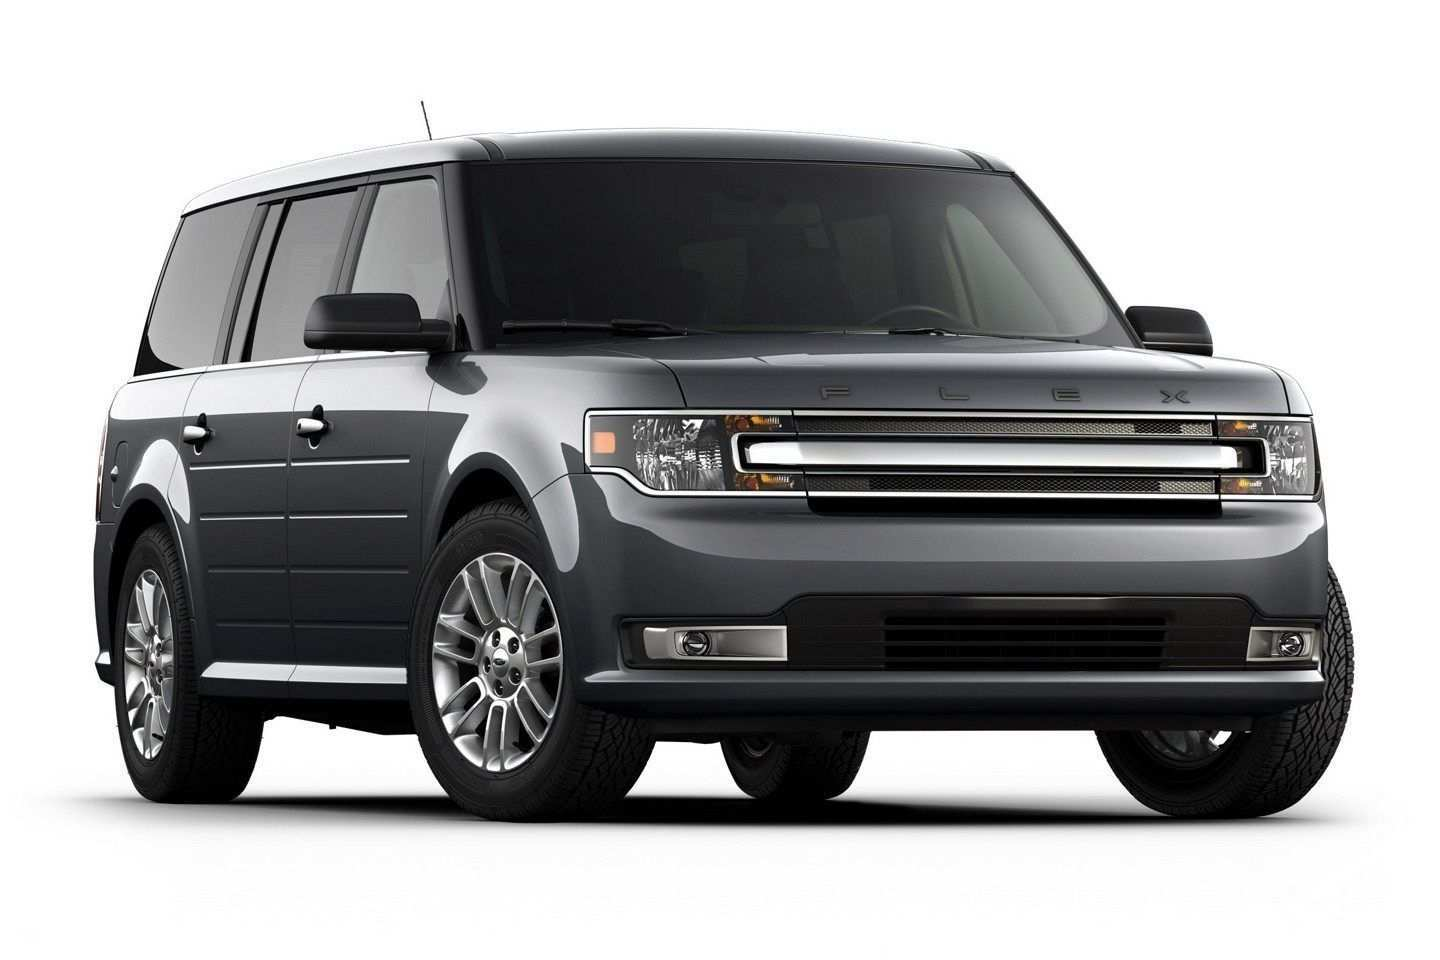 84 All New 2020 Ford Flex S Performance with 2020 Ford Flex S